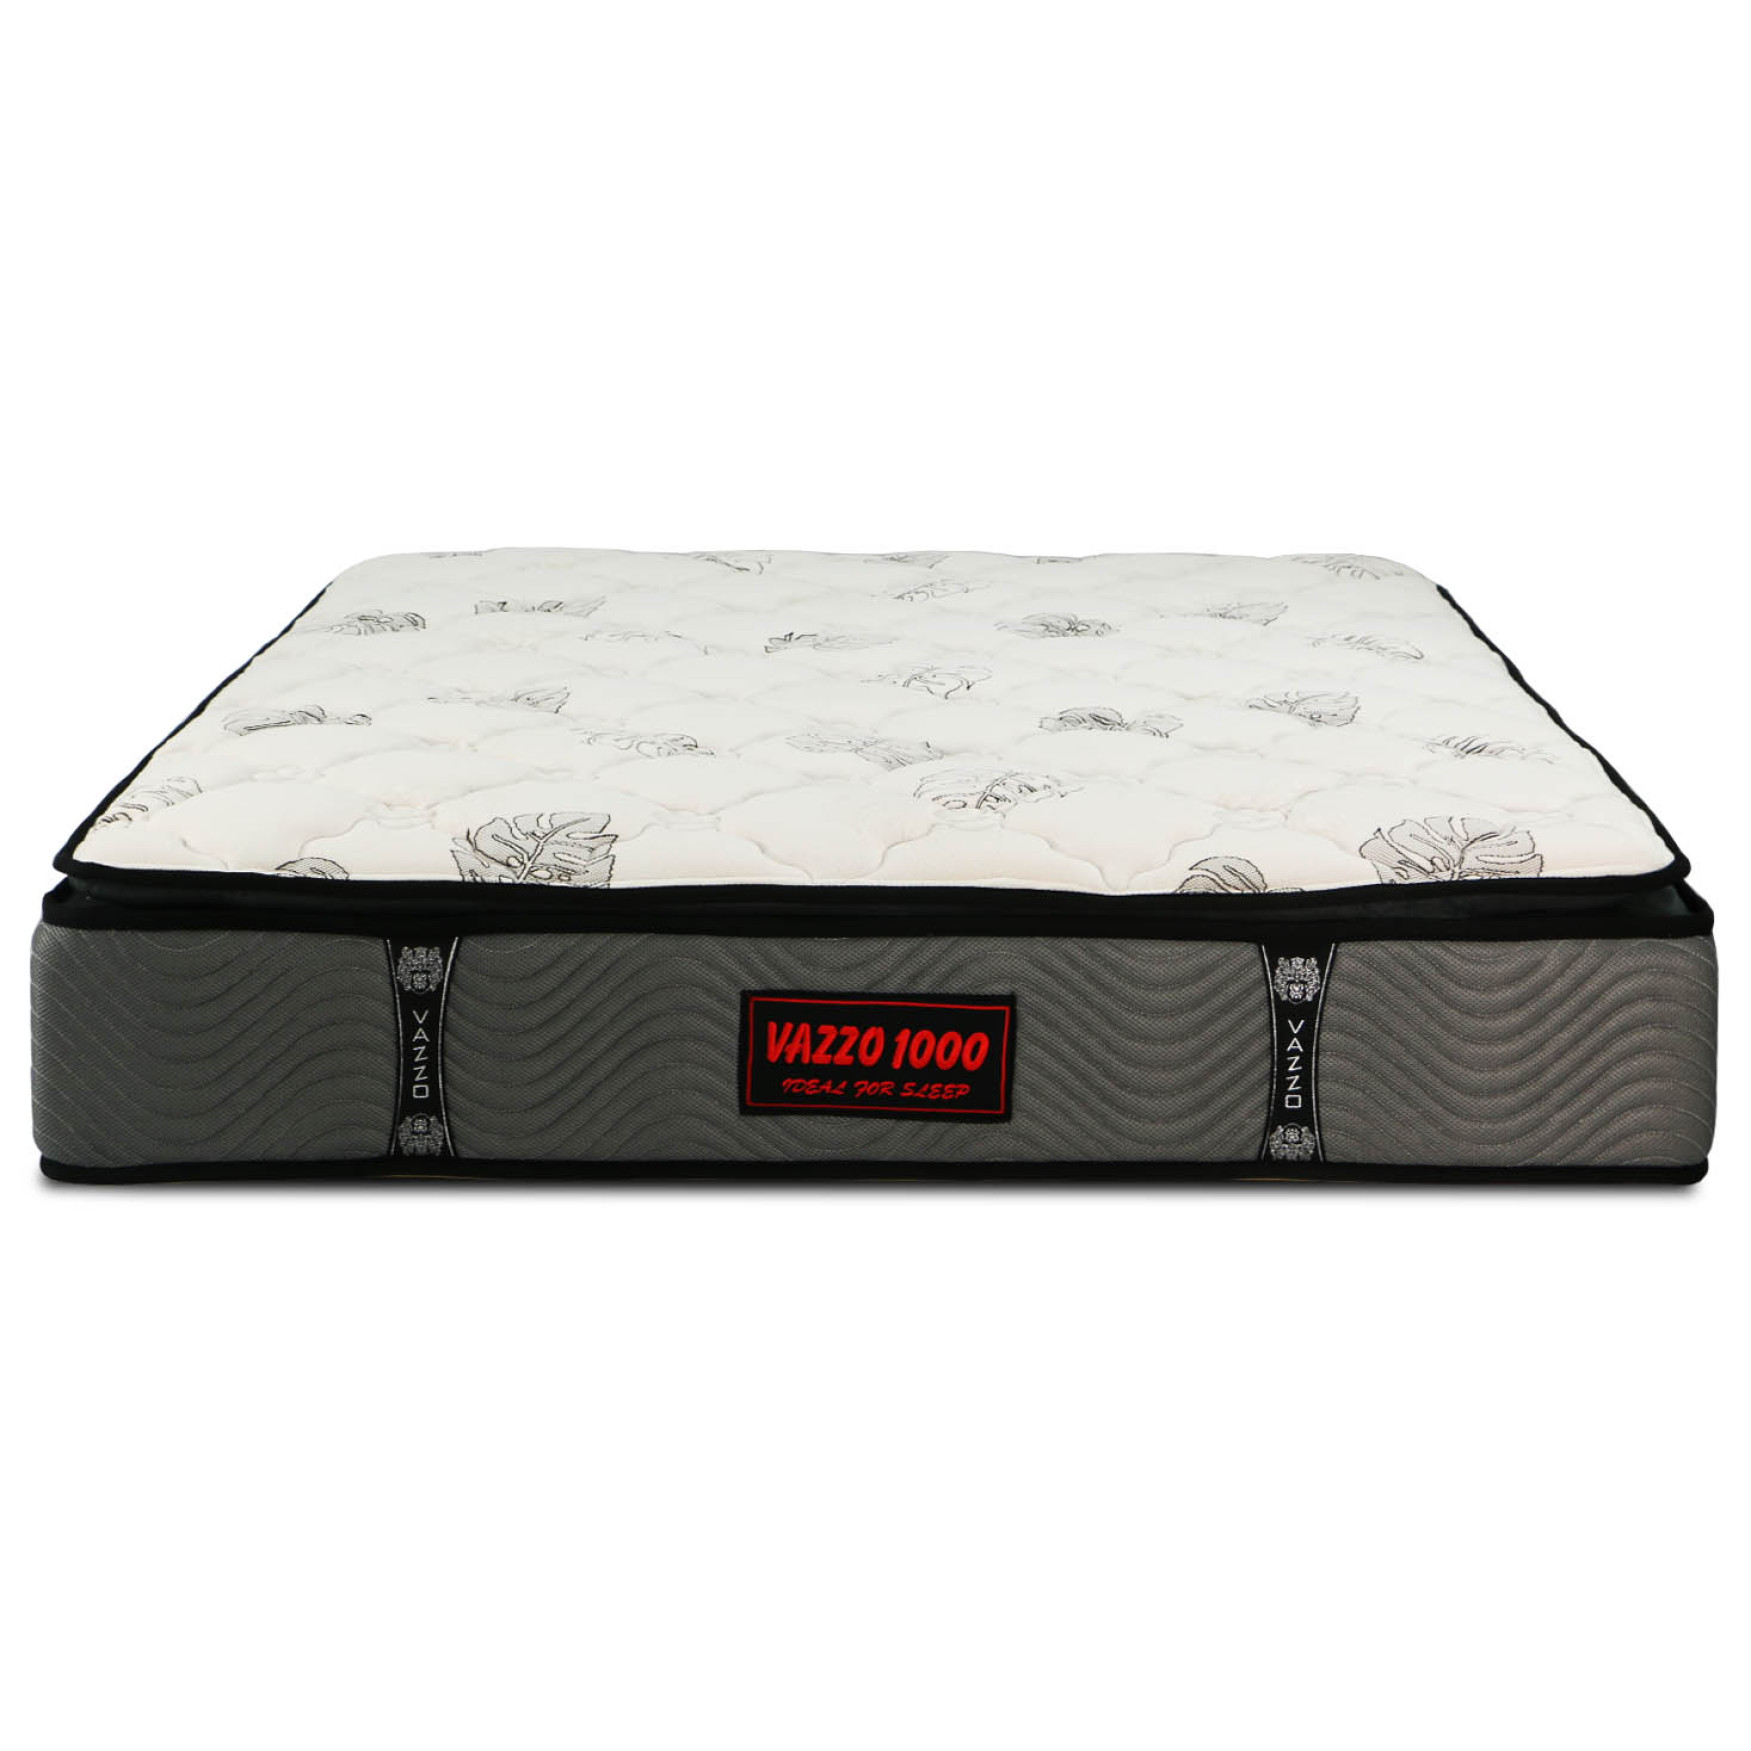 mattresses worldstores top pillow for c day topper home htm delivery the from next ruby img relyon everything mattress